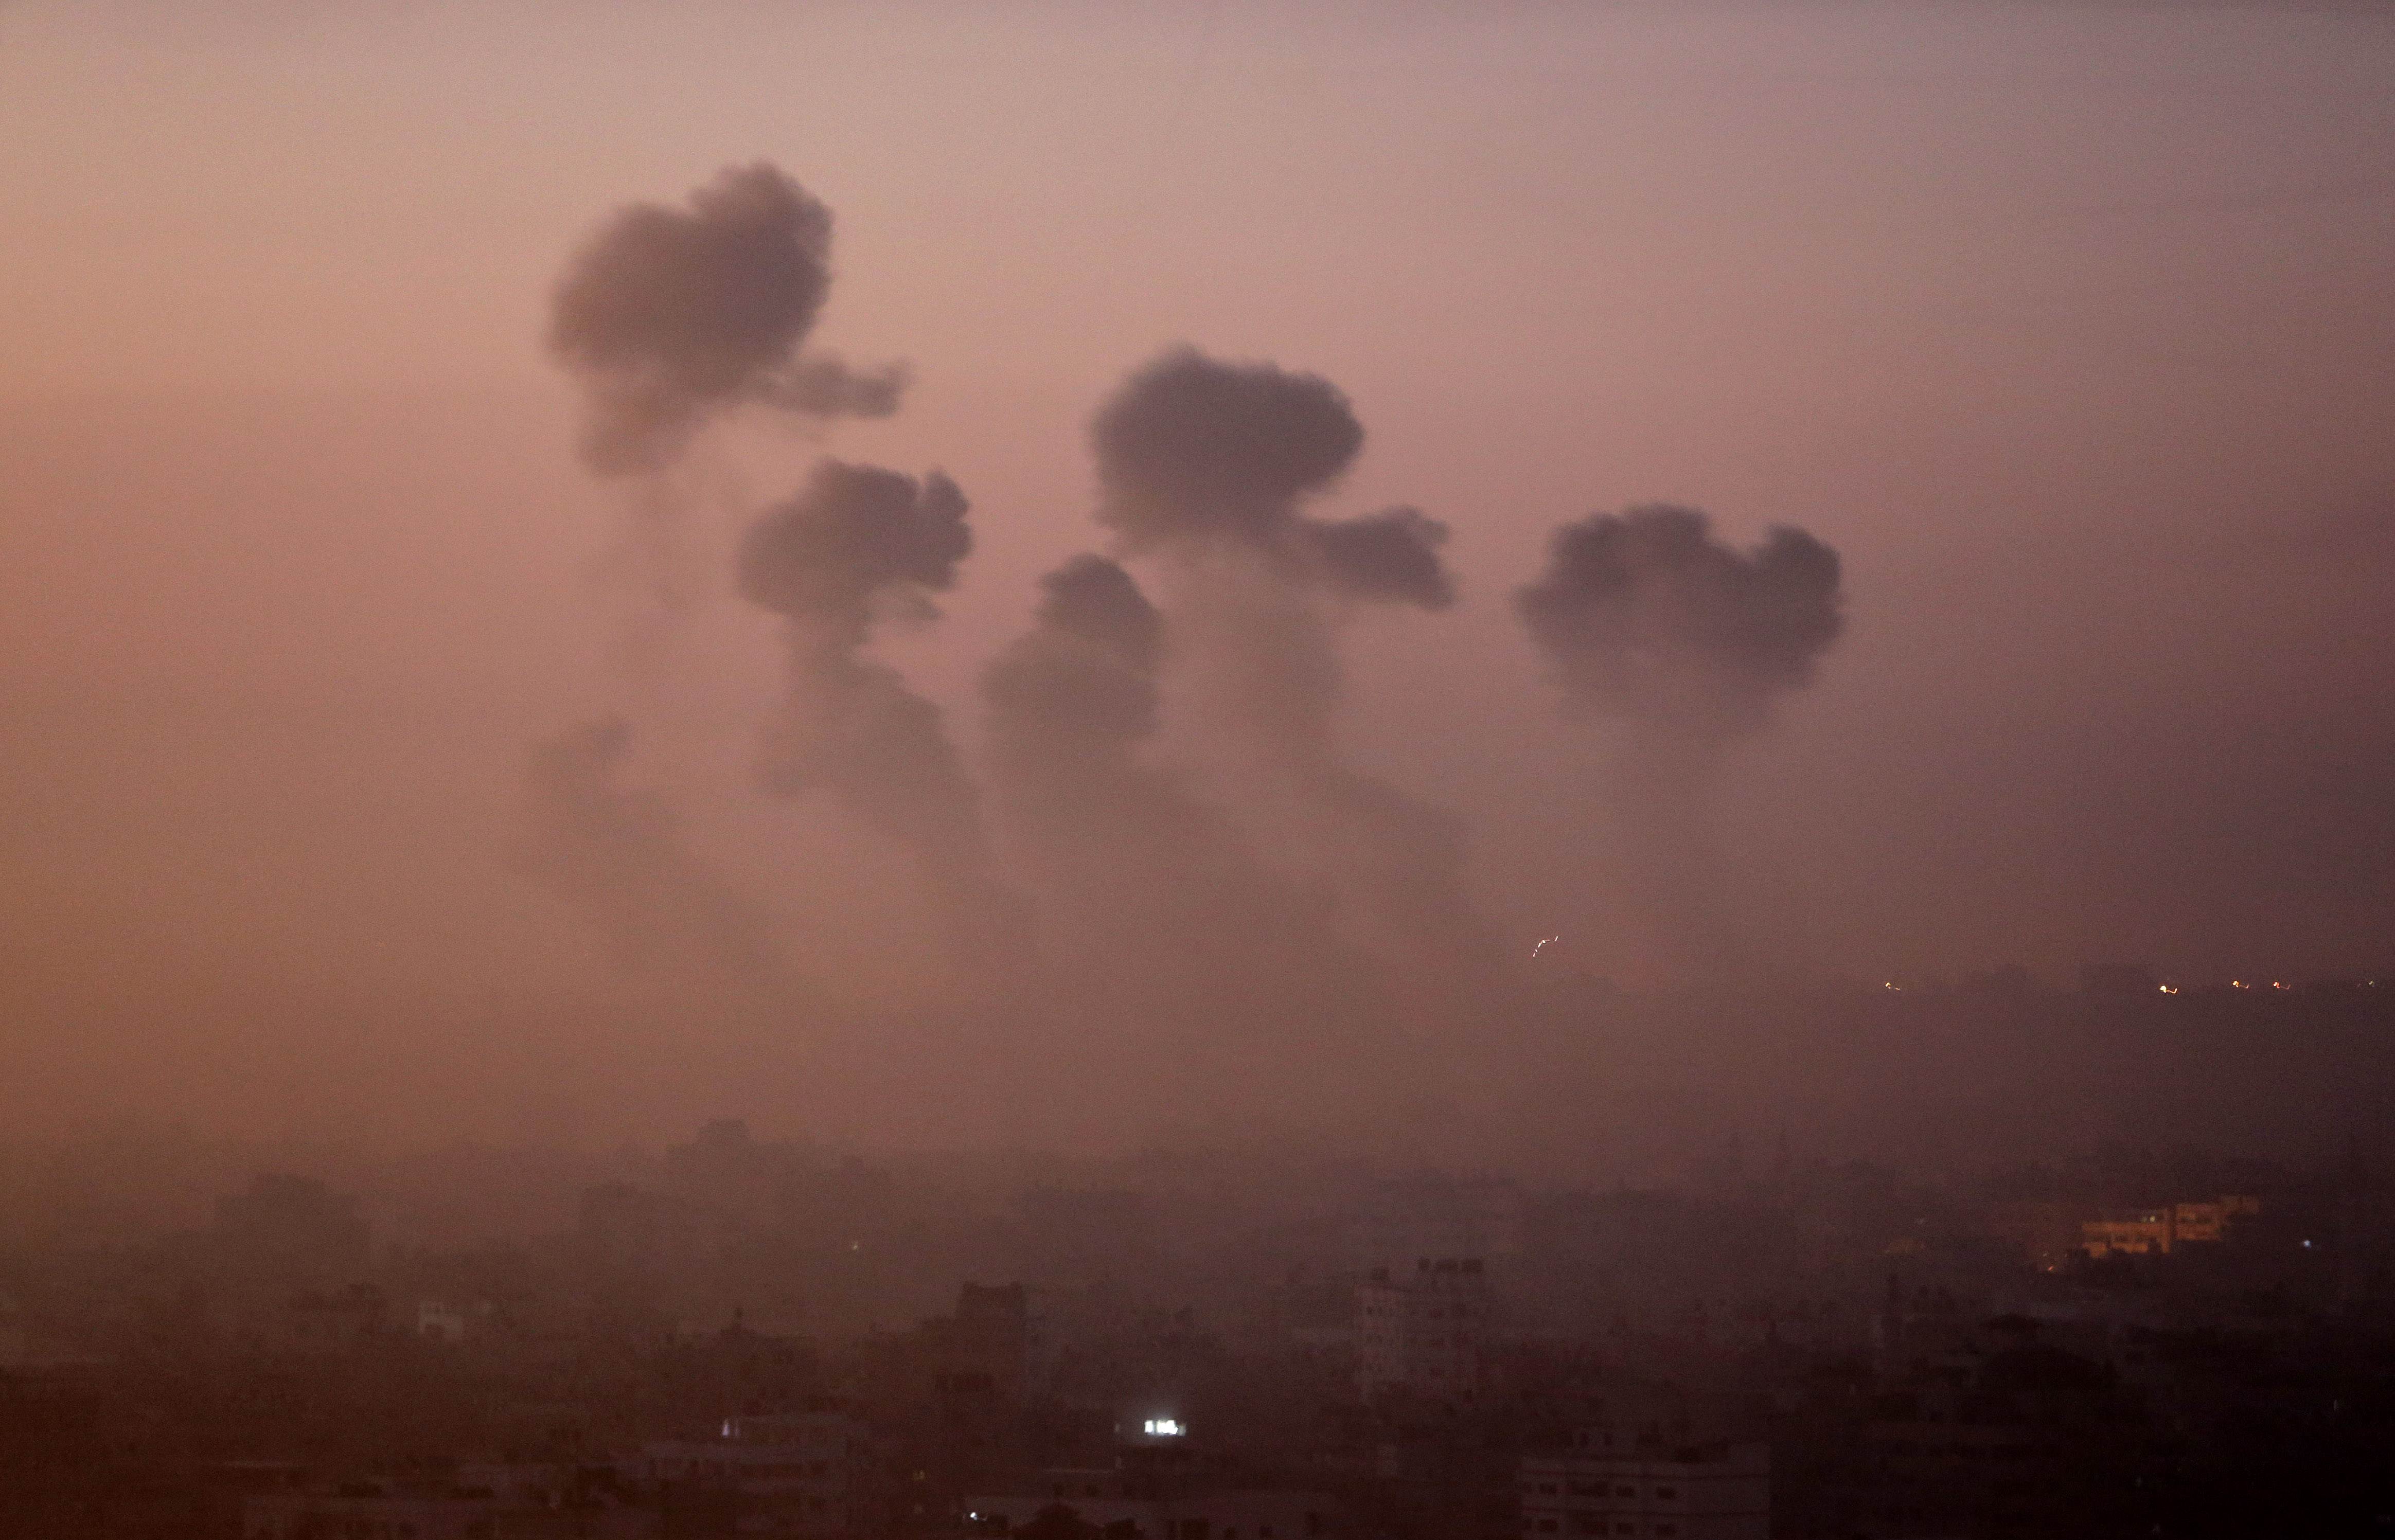 AP ANALYSIS: Amid war, endgames in Gaza emerge